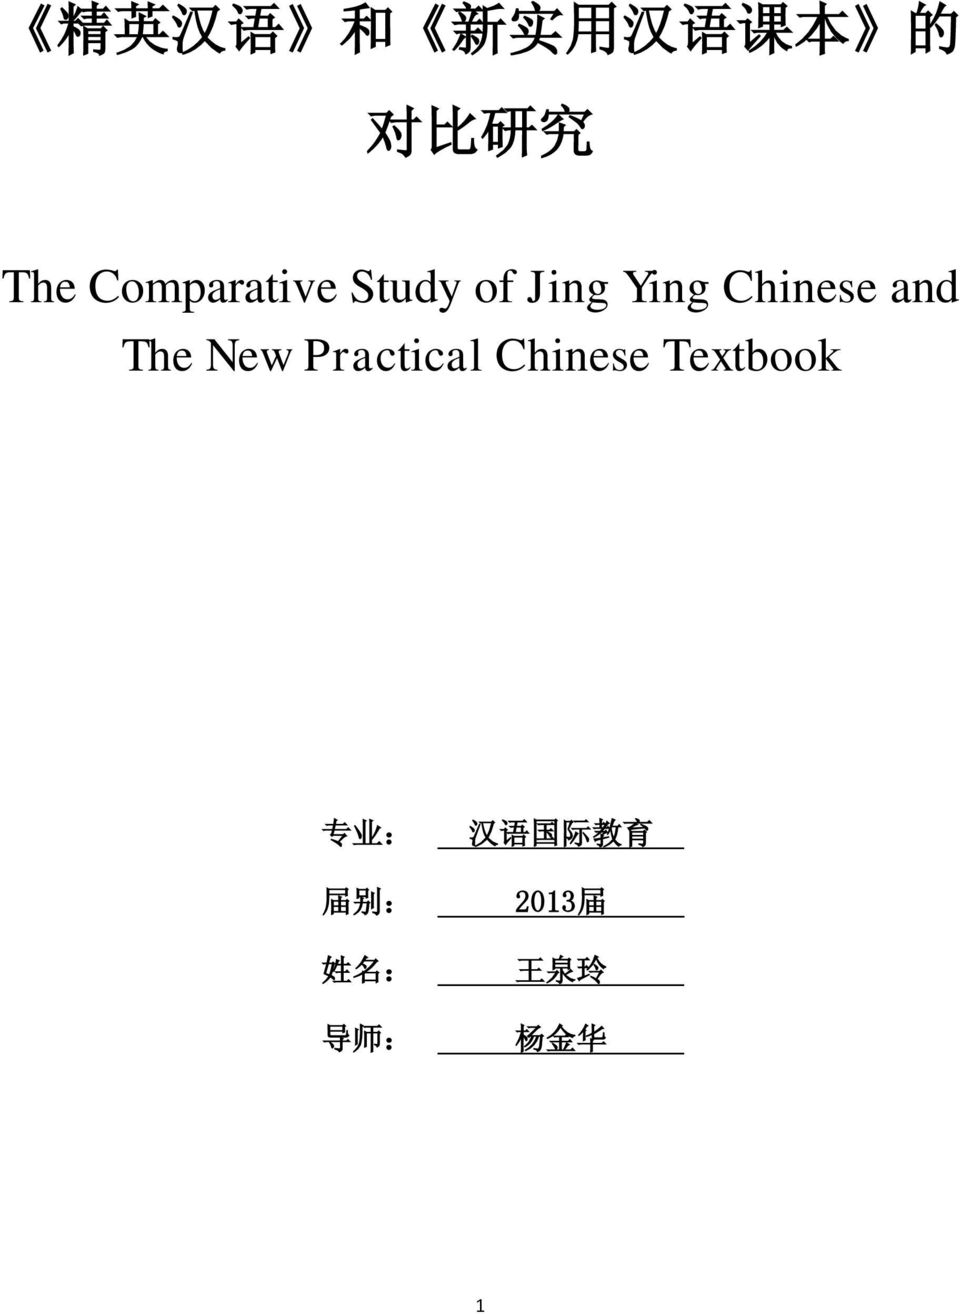 The New Practical Chinese Textbook 专 业 : 届